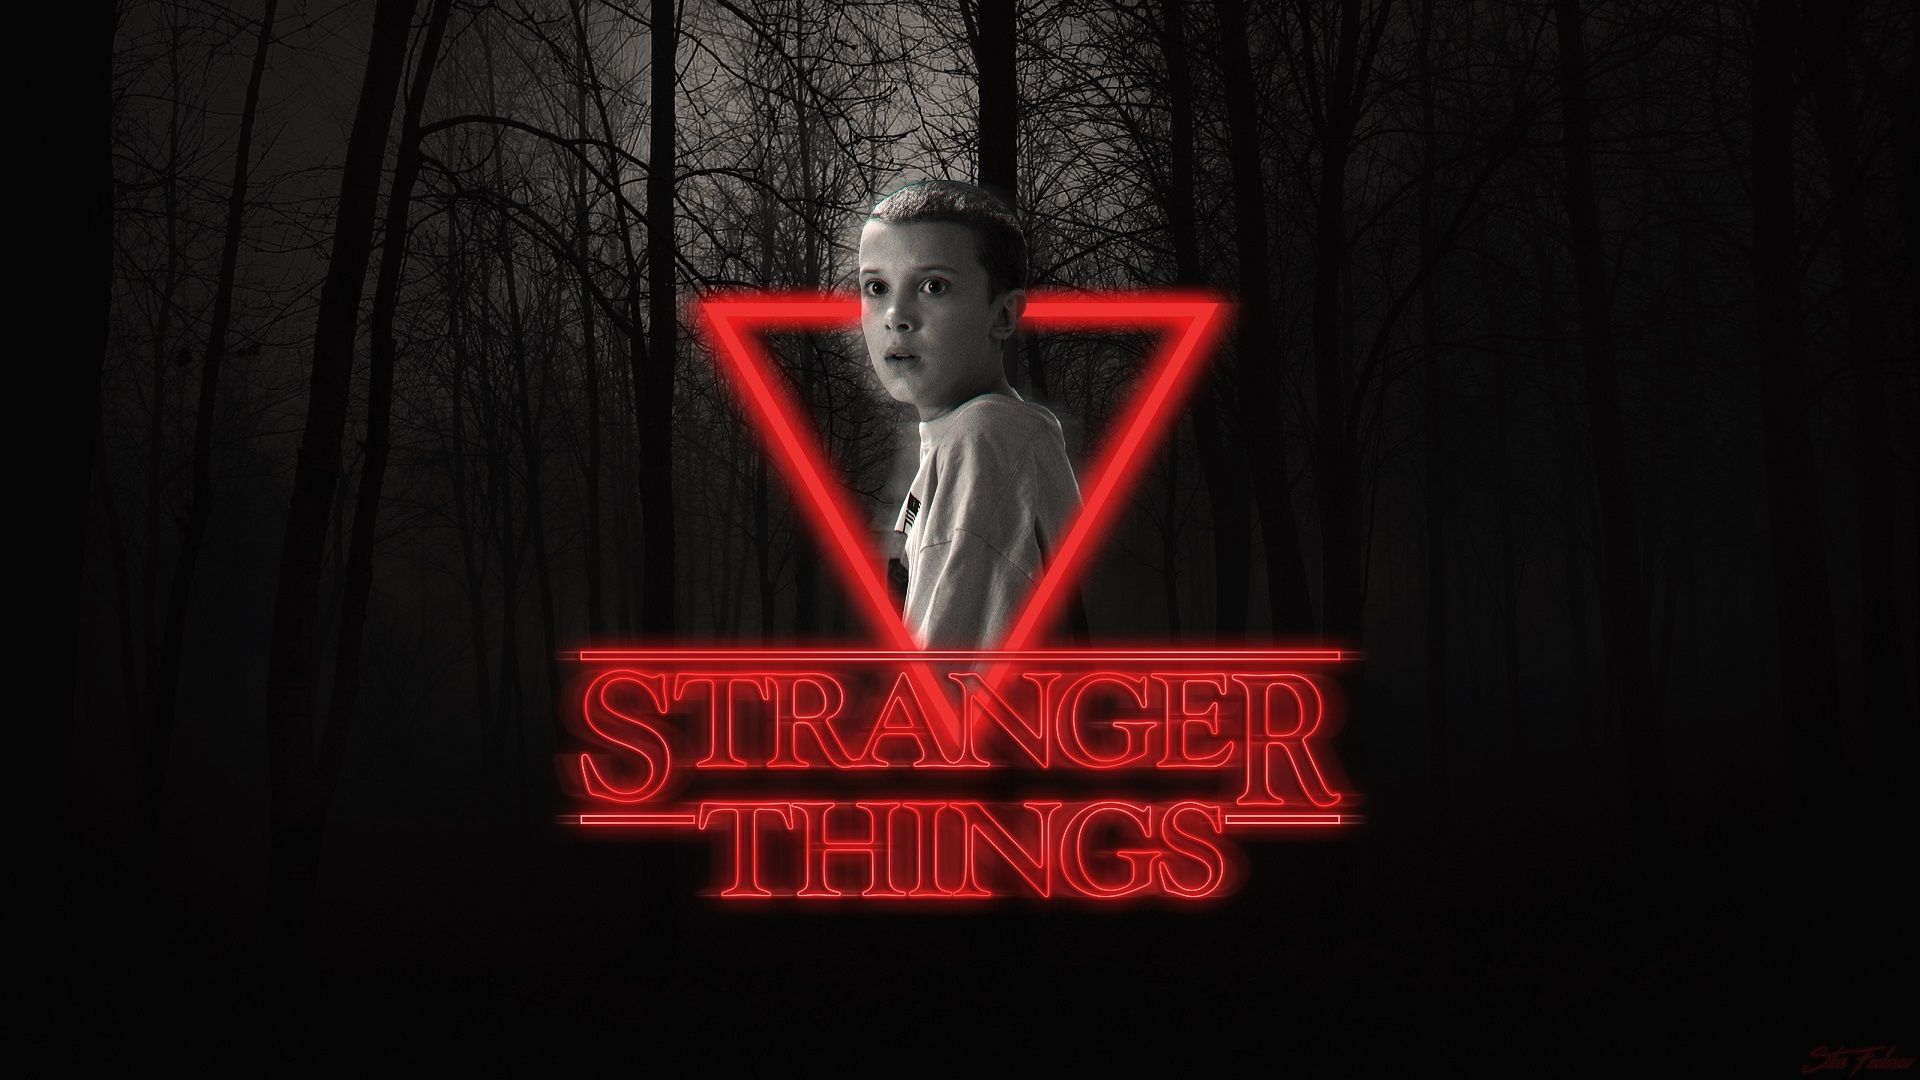 stranger things aesthetic